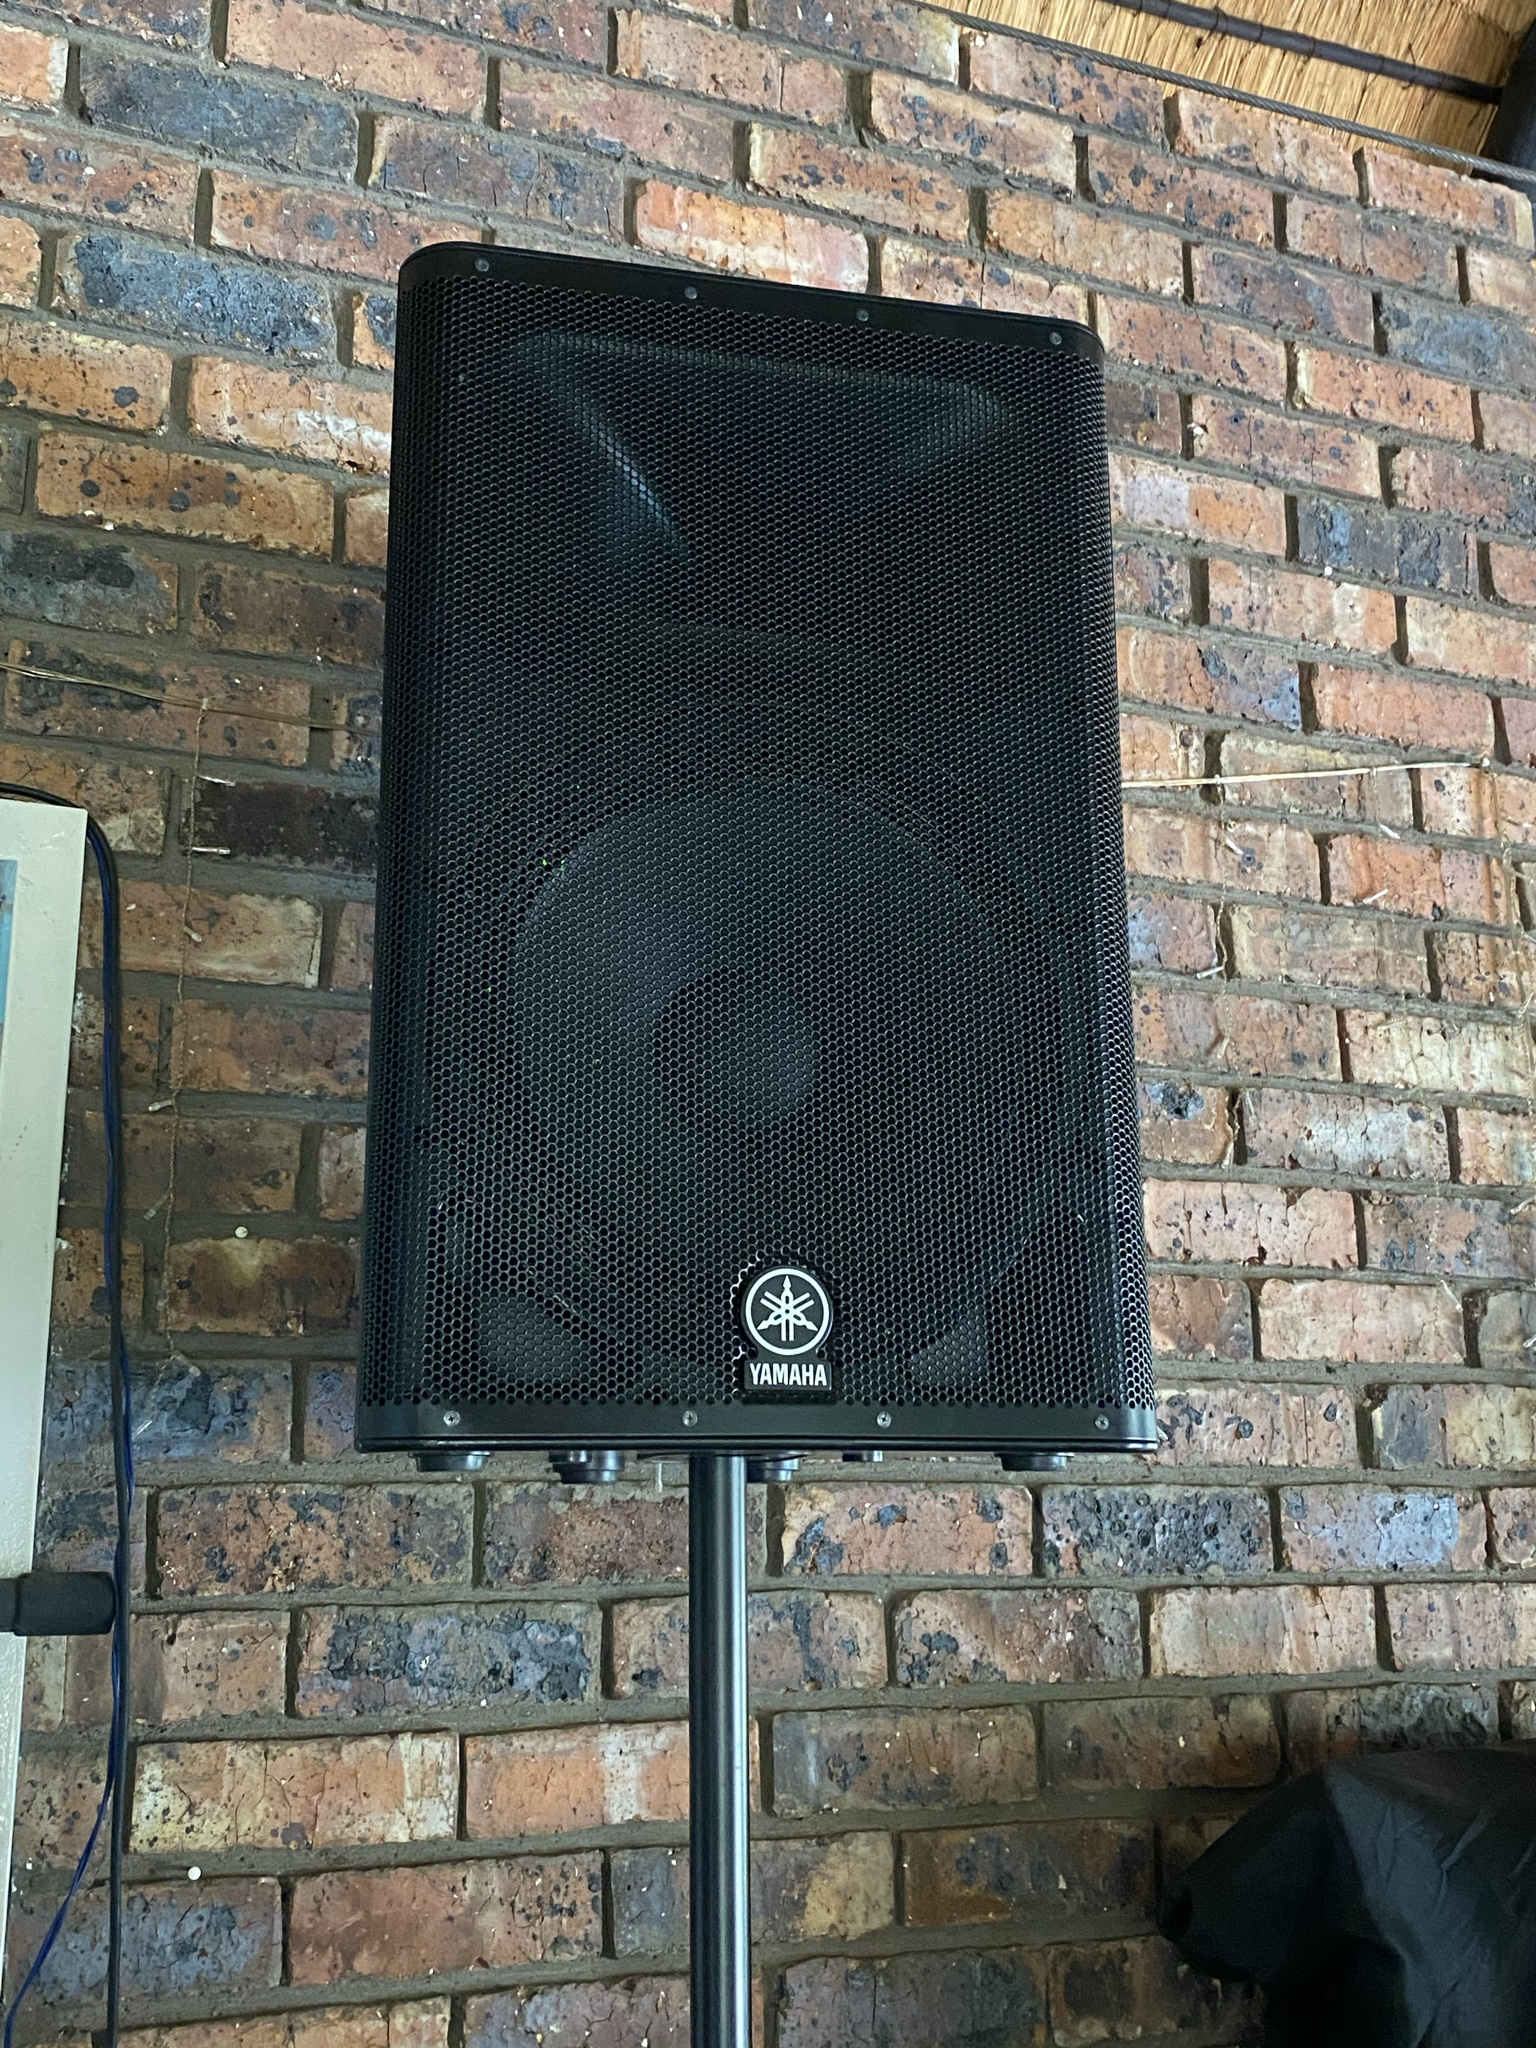 Professional sound system.4 Yamaha speakers plus covers,desk,mic,stands,cables.